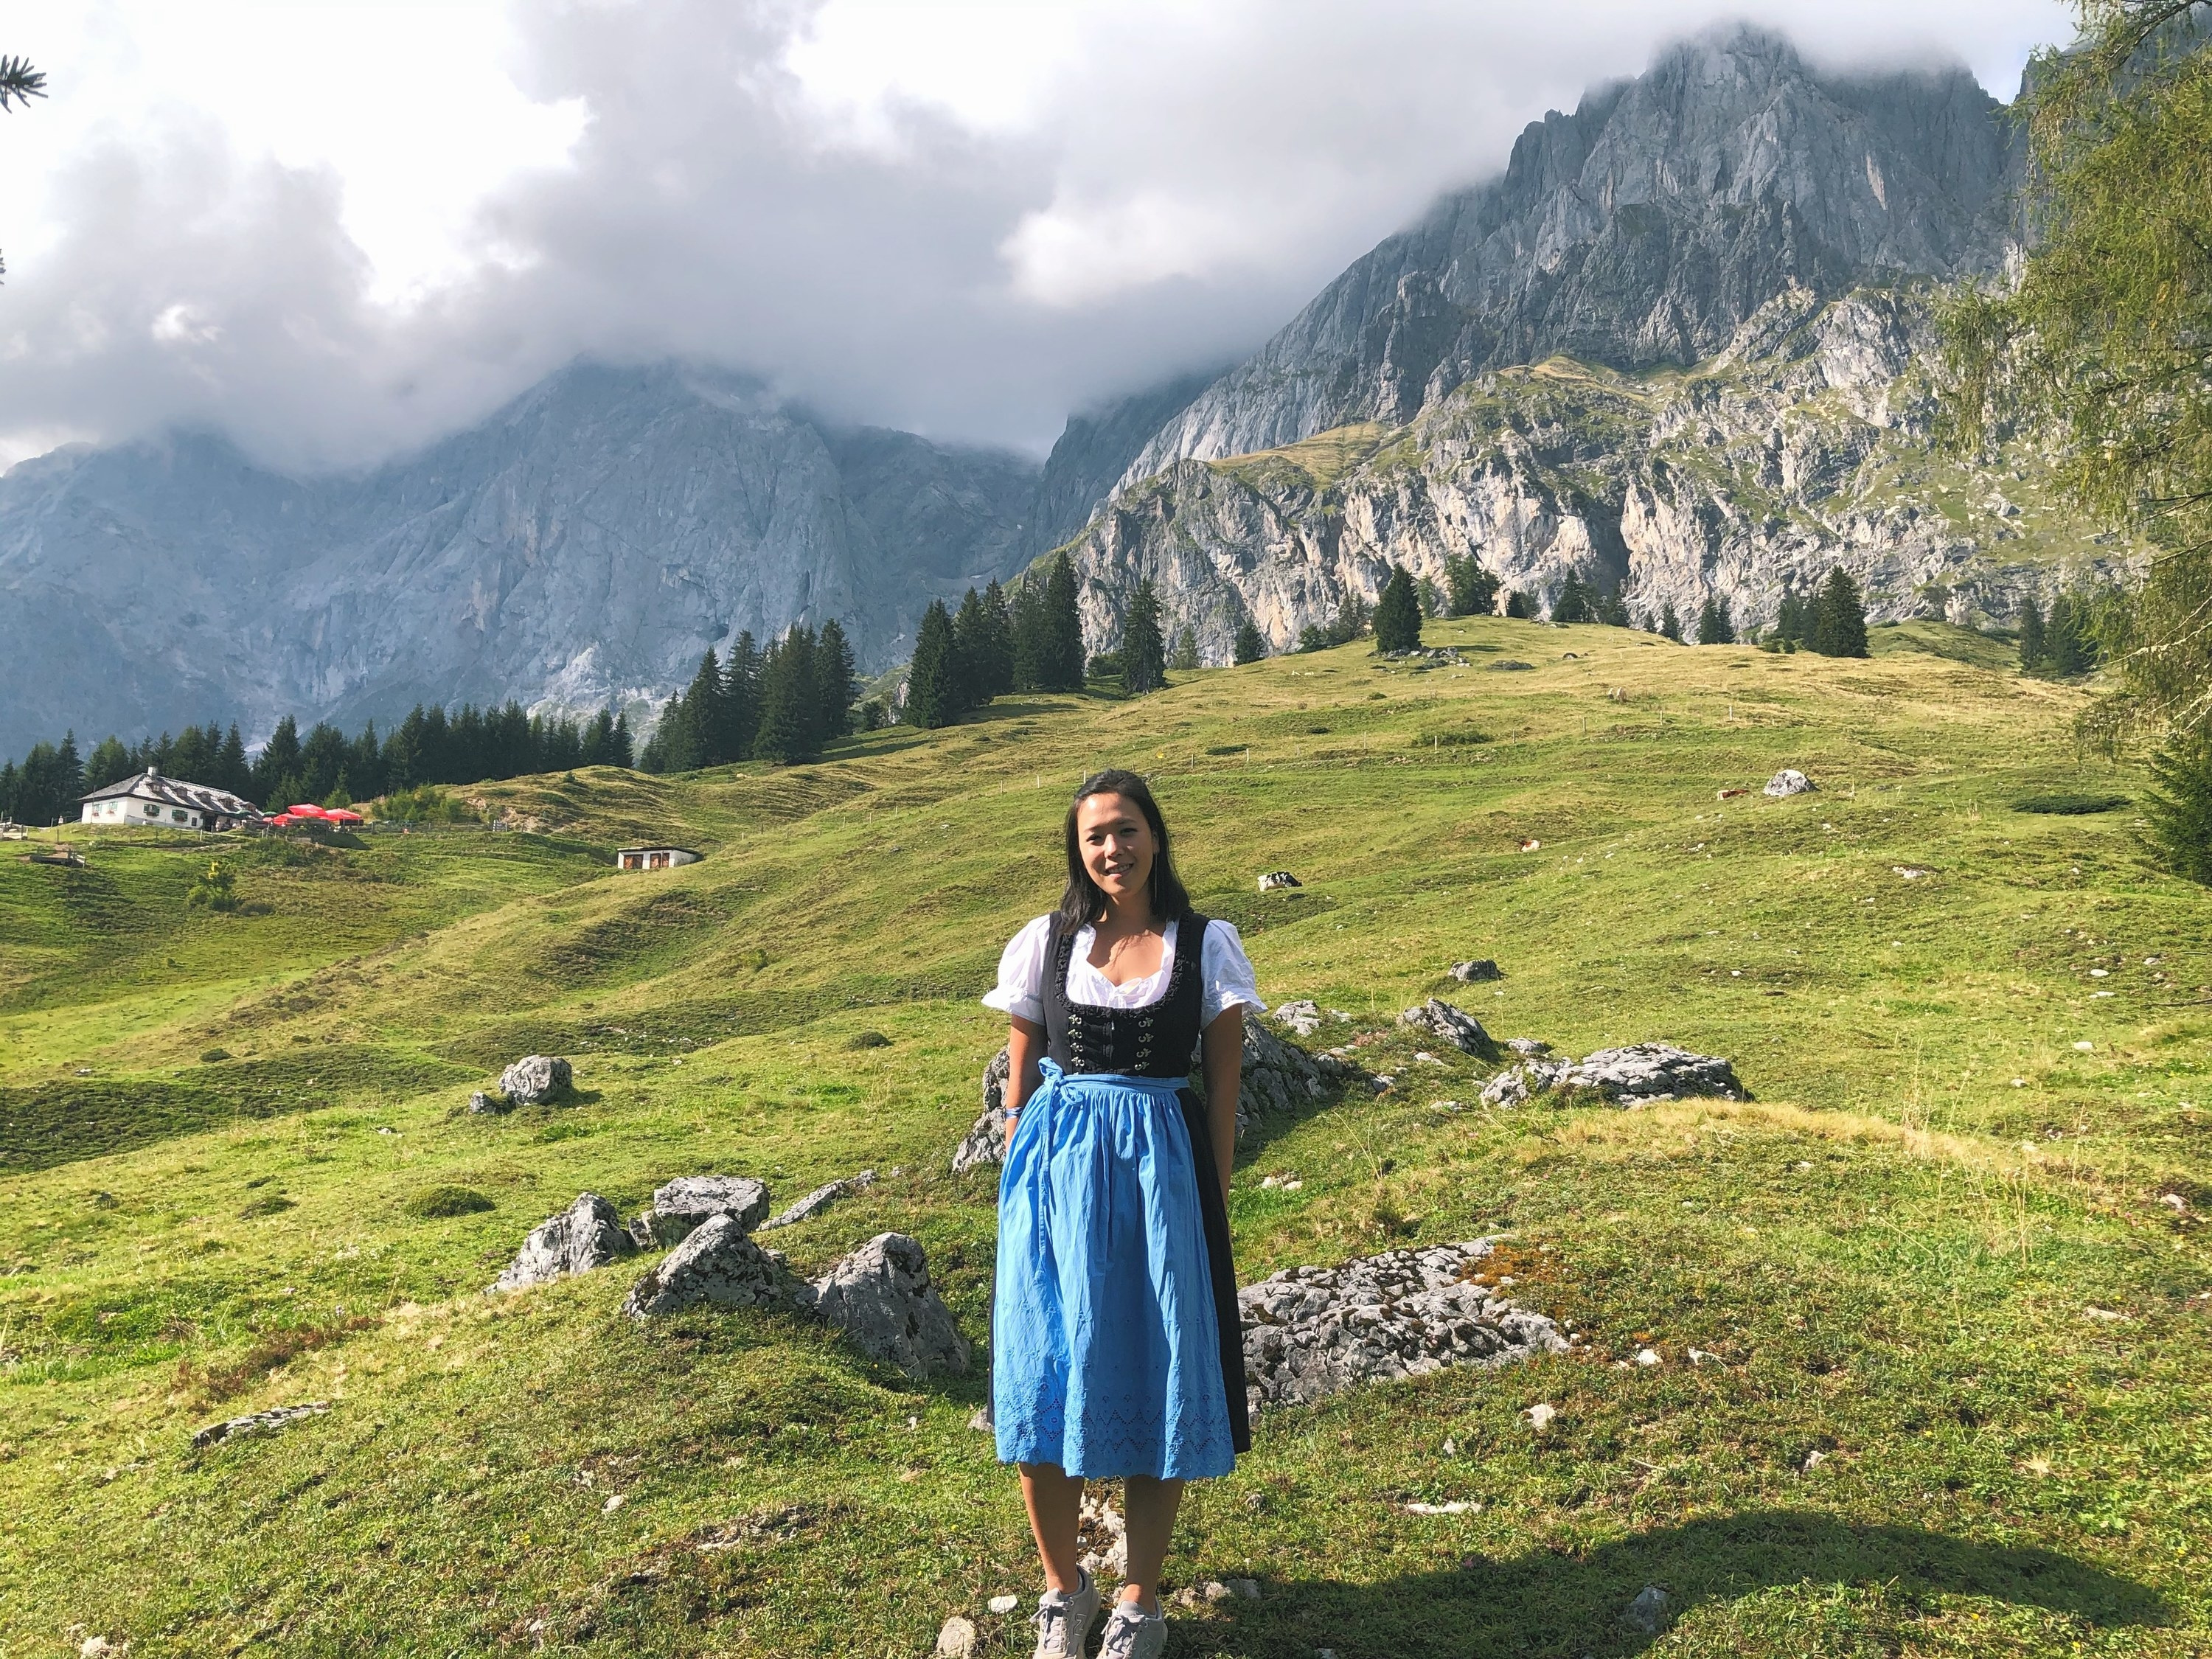 The writer wearing a traditional dirndl, standing in front of a lush mountain top